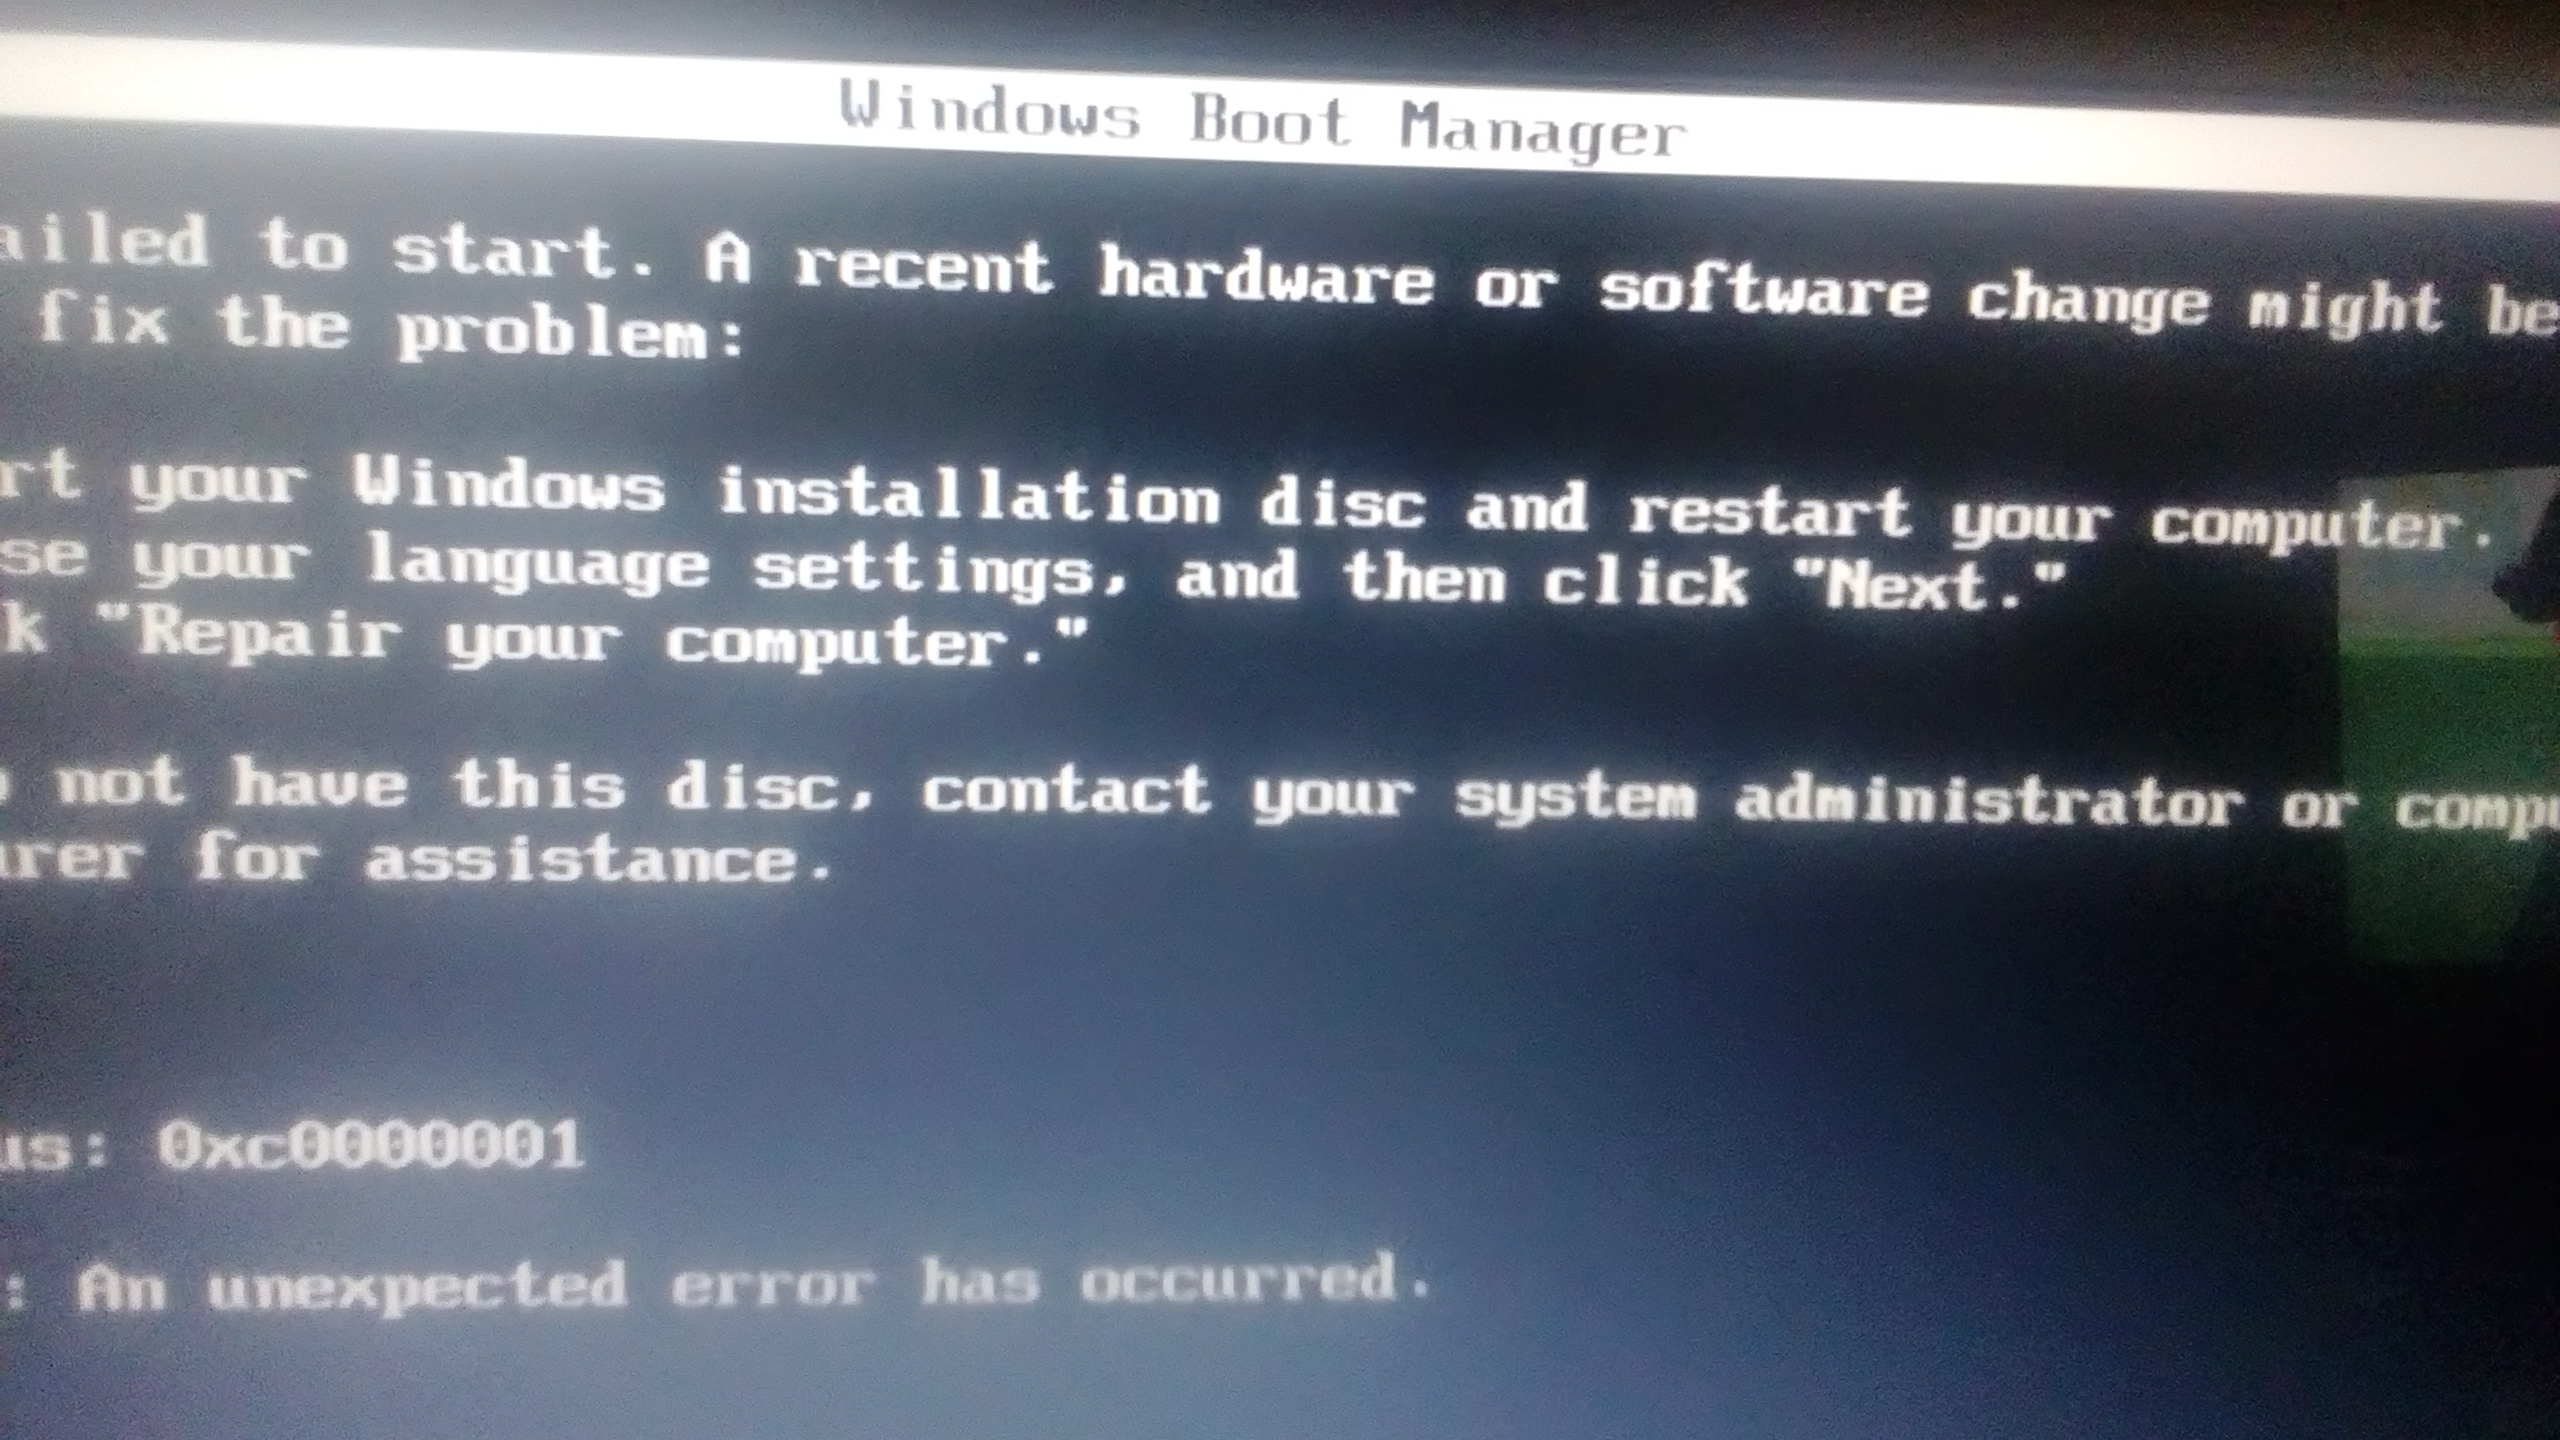 Samsung RV511 brak startu z windows boot manager - elektroda pl